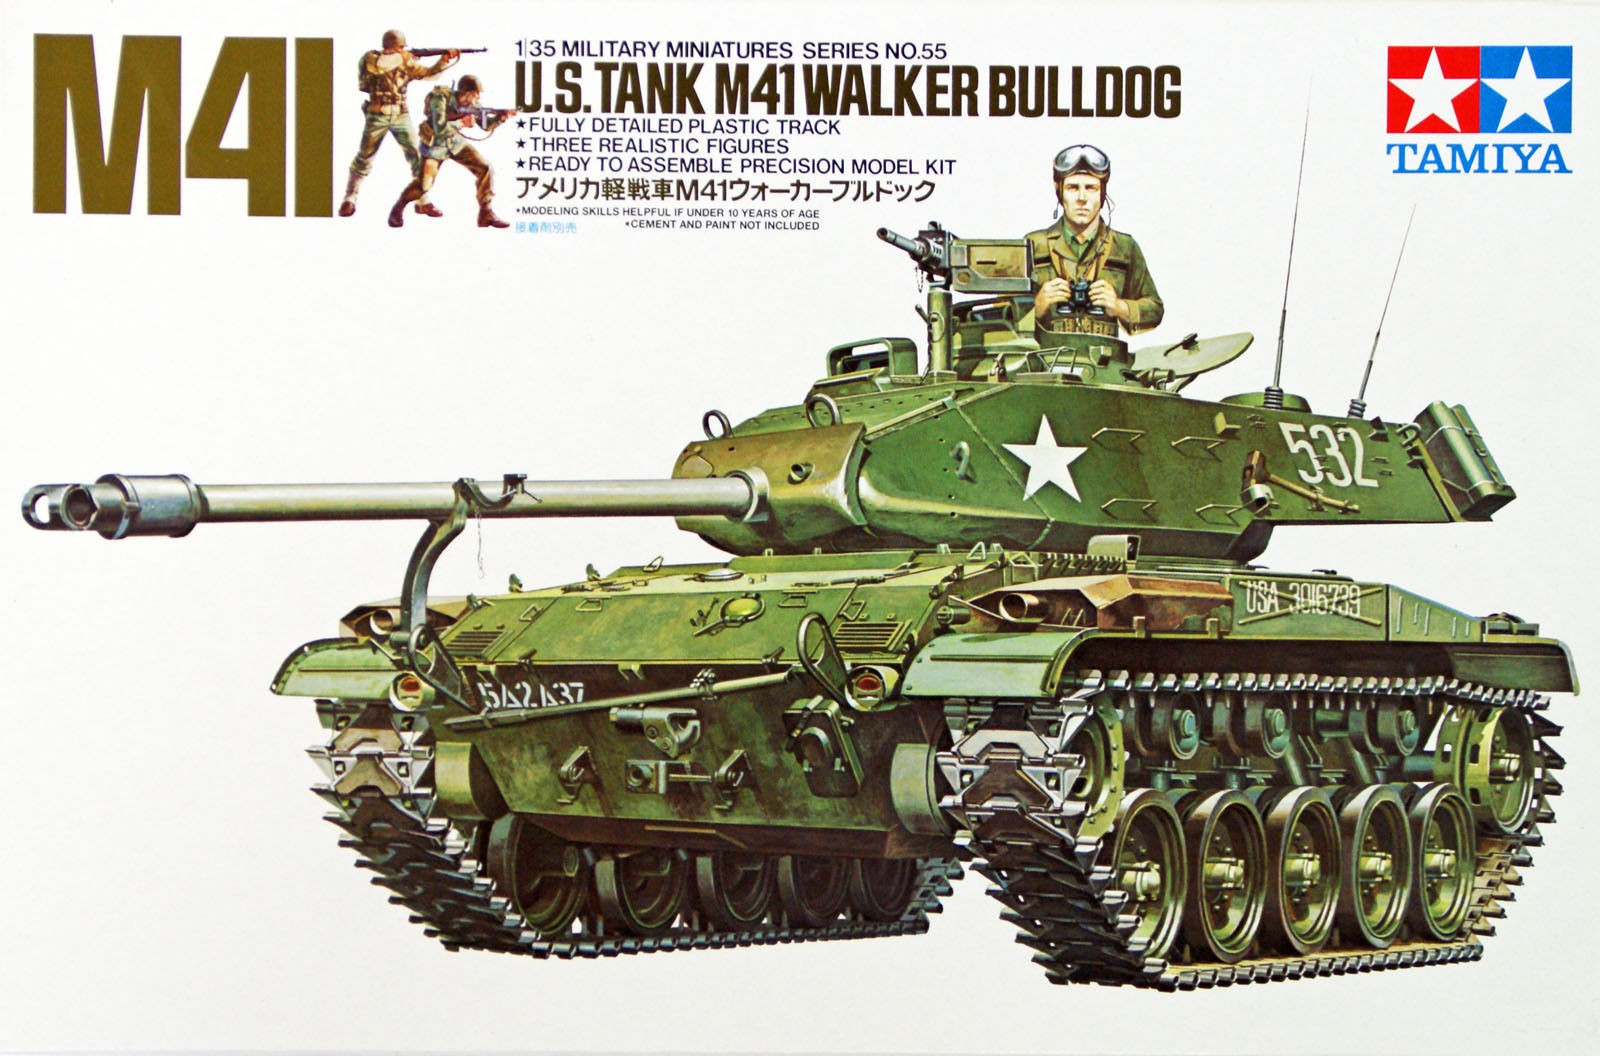 Allied M41 Walker Bulldog Kit - Tamiya 35055 - plastic model kit - 1/35 scale